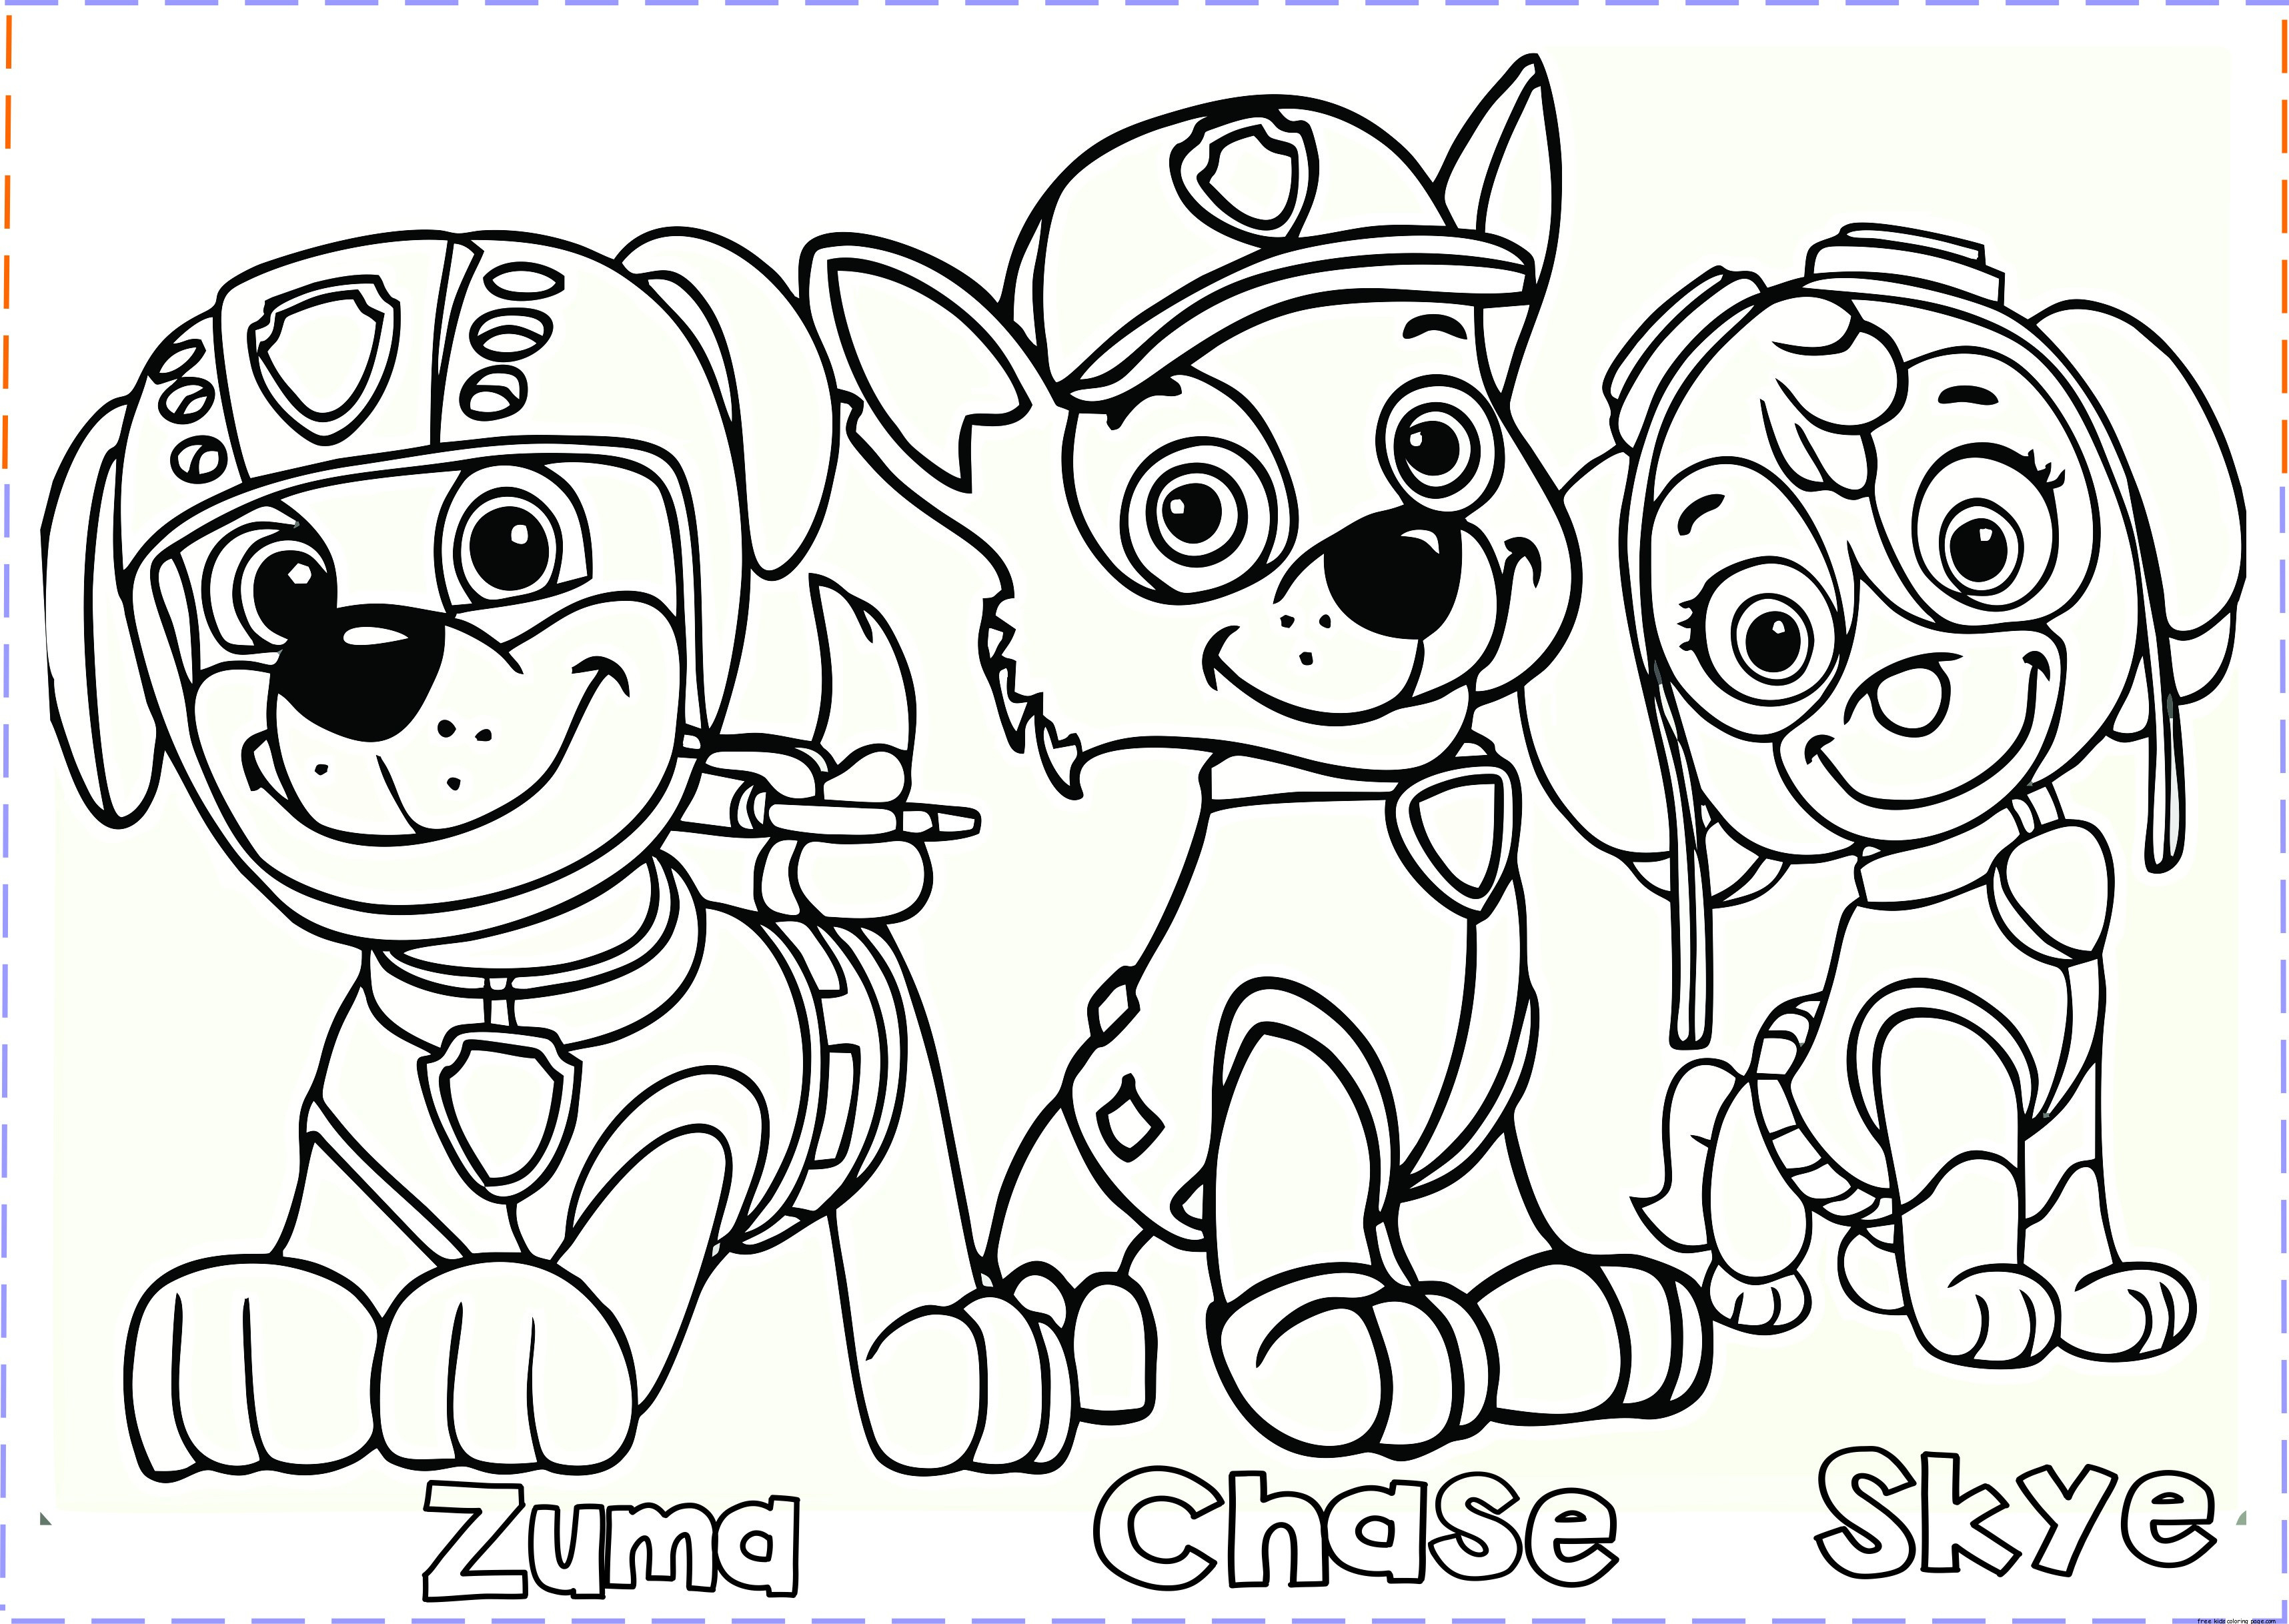 Coloring Pages : Paw Patrol Coloring Pages For Kids To Printkidsing - Free Printable Paw Patrol Coloring Pages